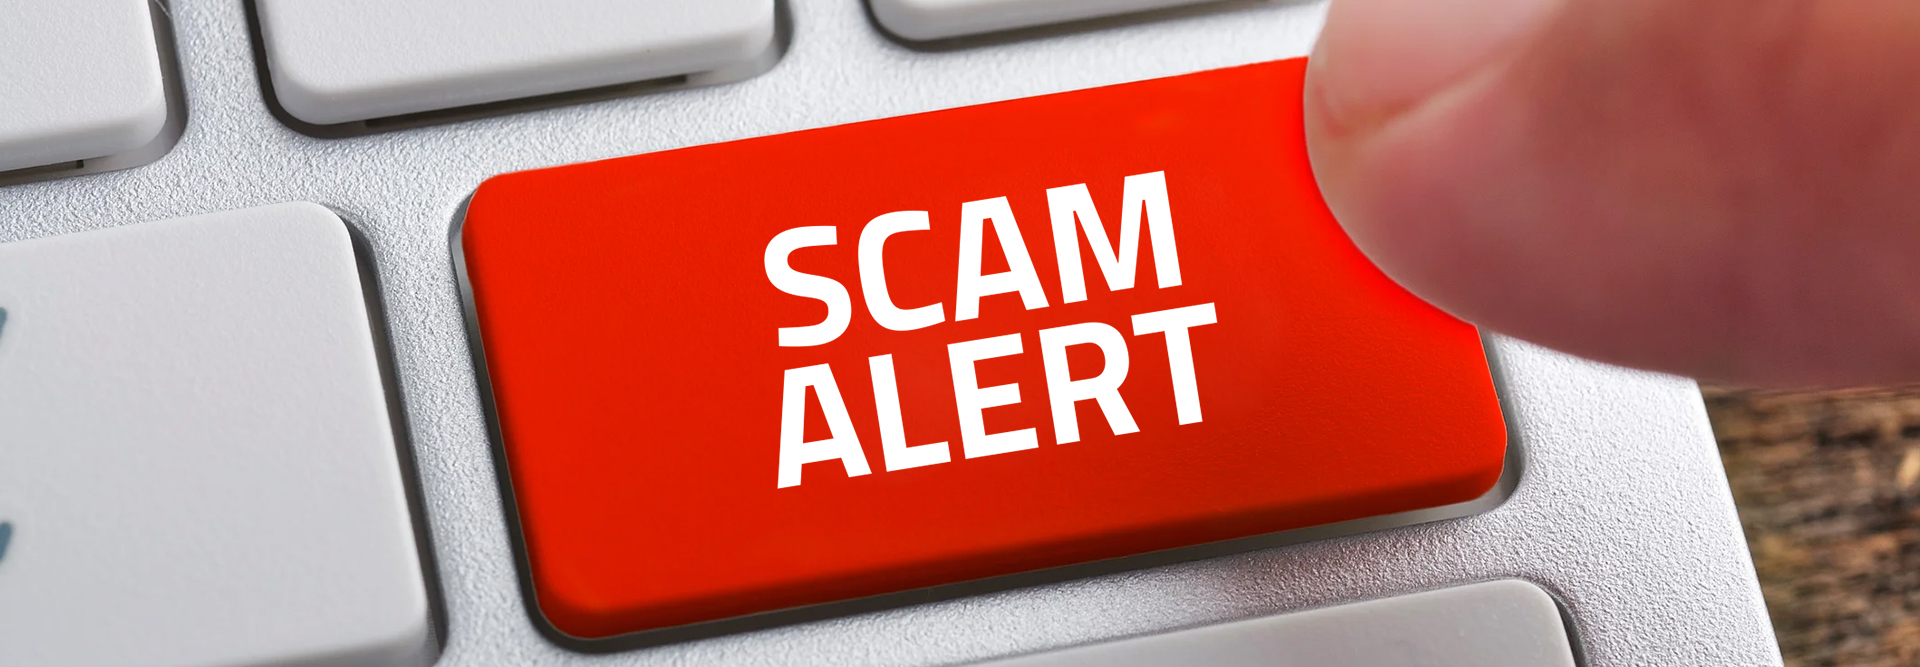 Recent Online Scams That You Should Beware Of